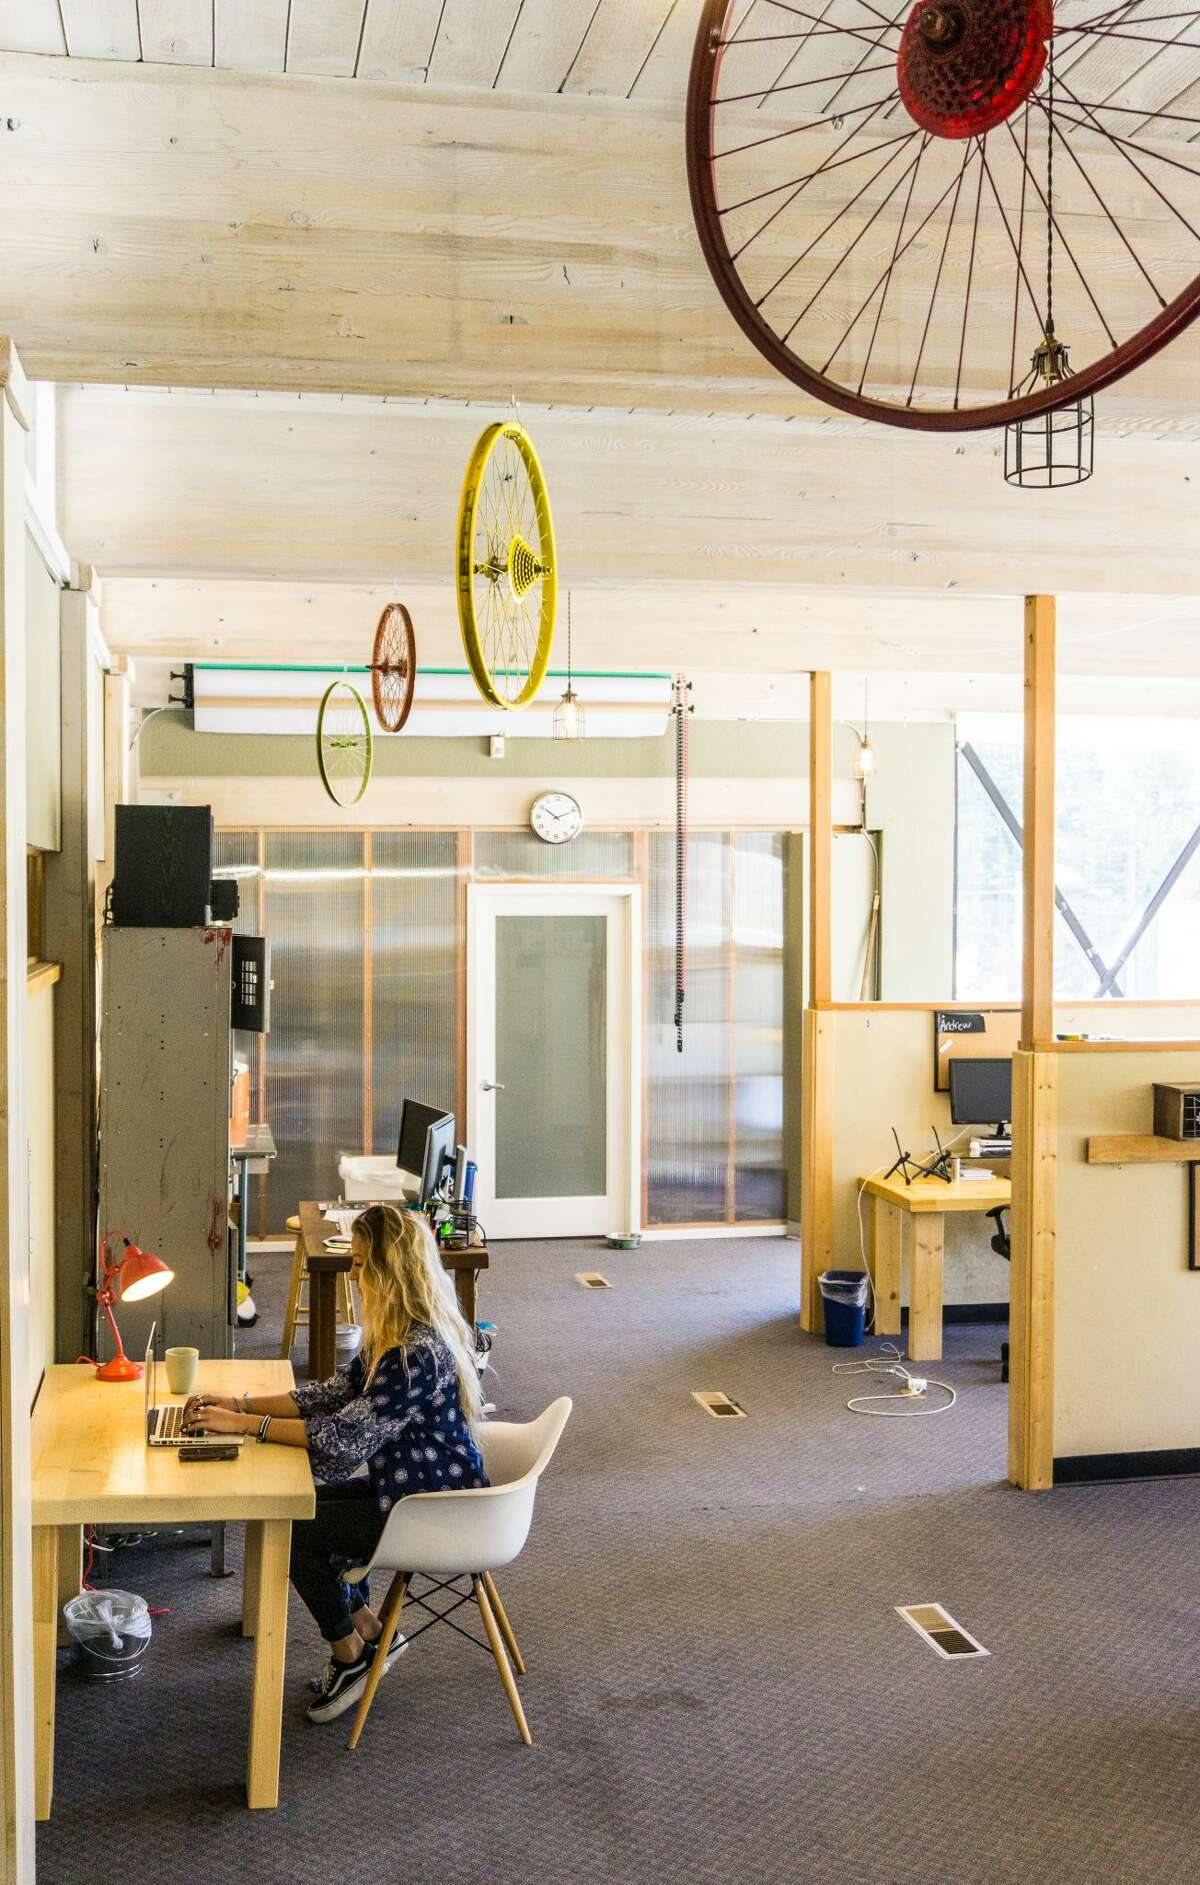 Tahoe Mill, a co-working space in Truckee, opened in 2013.